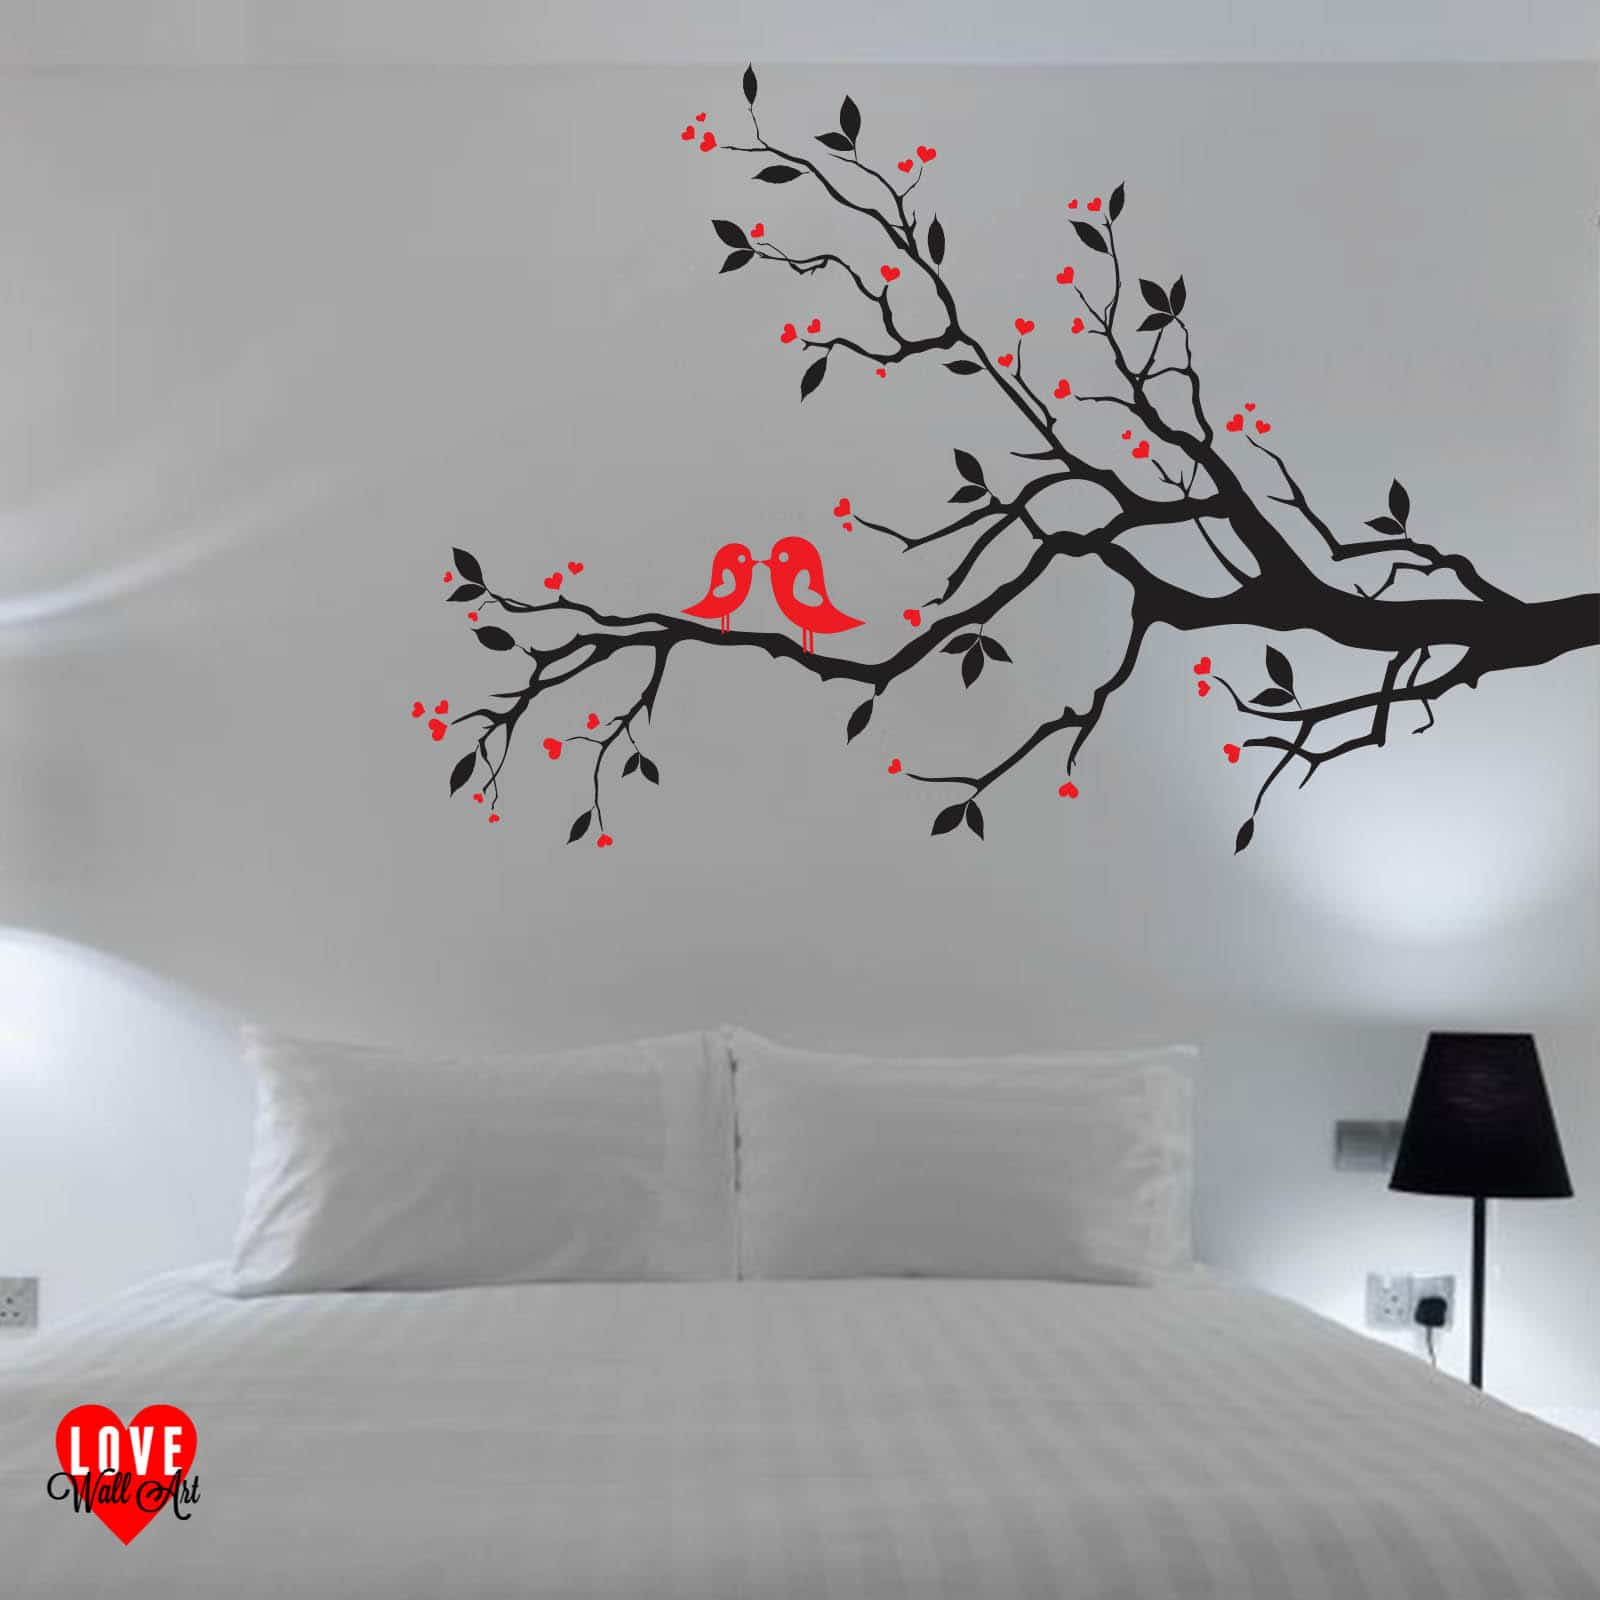 Love Birds on a Branch with Hearts design wall art wall